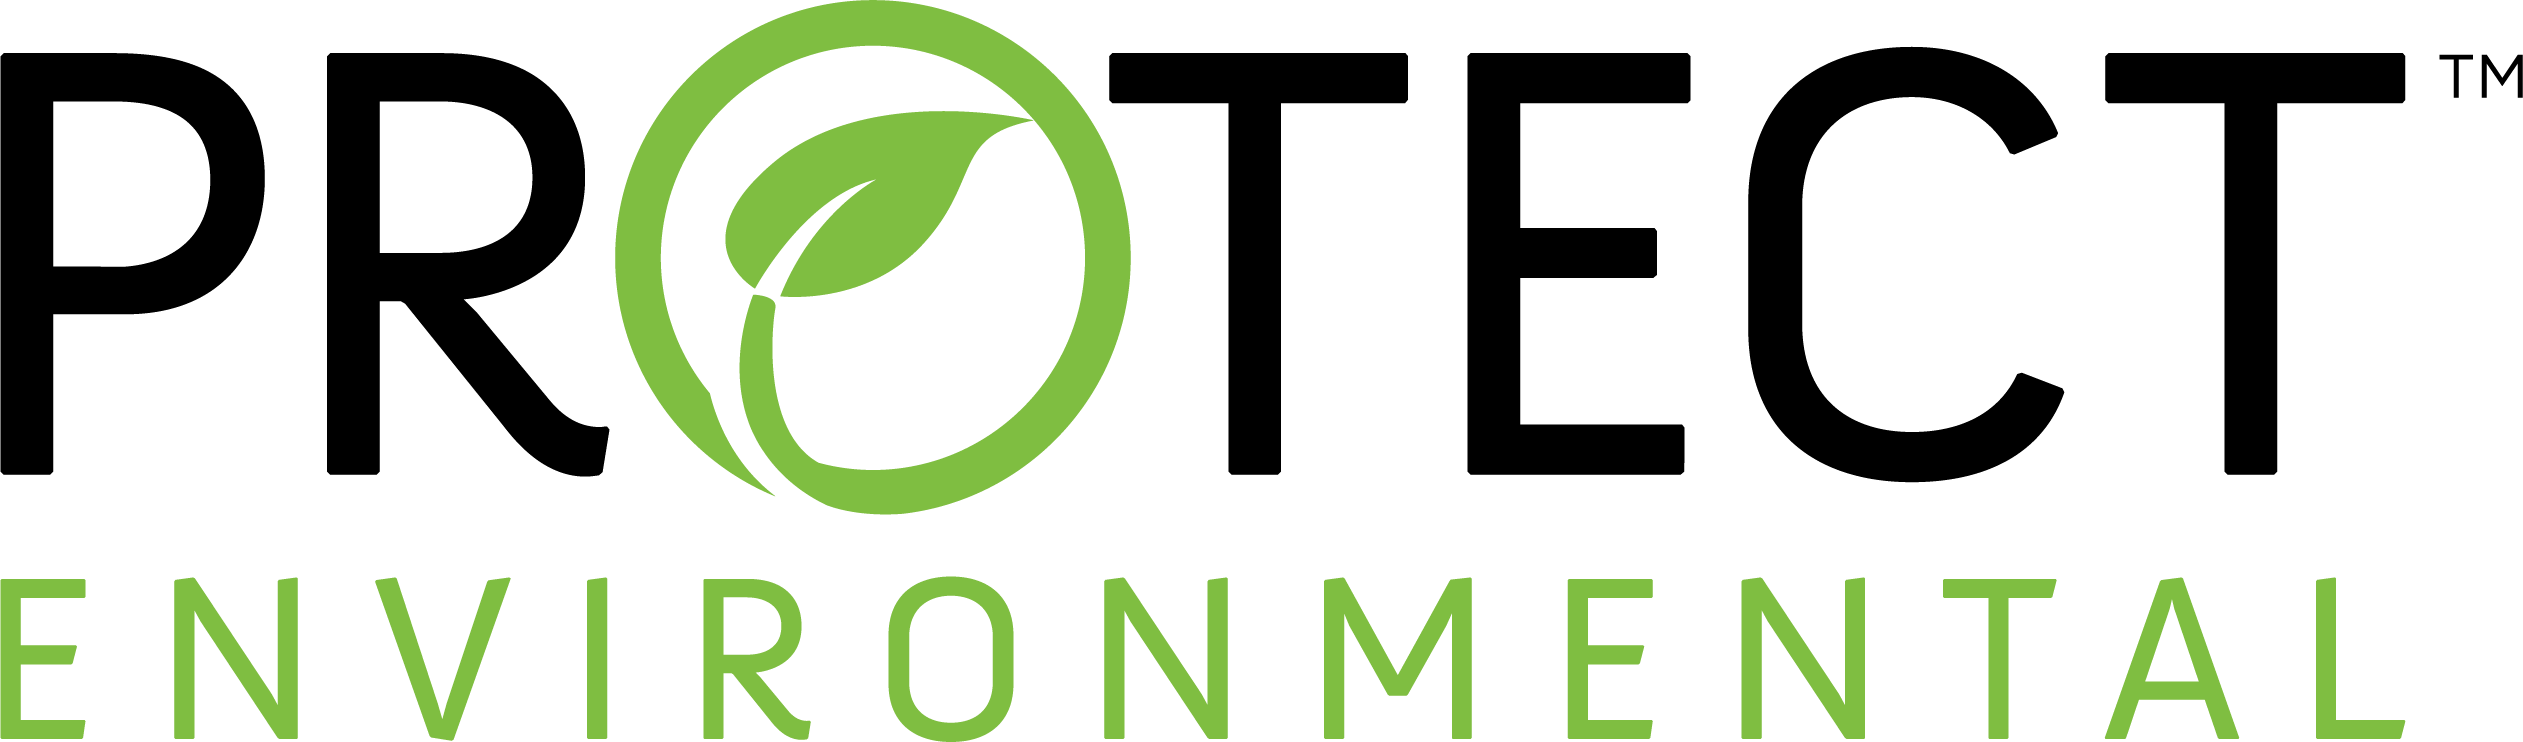 cropped-Protect-Environmental-Logo.png